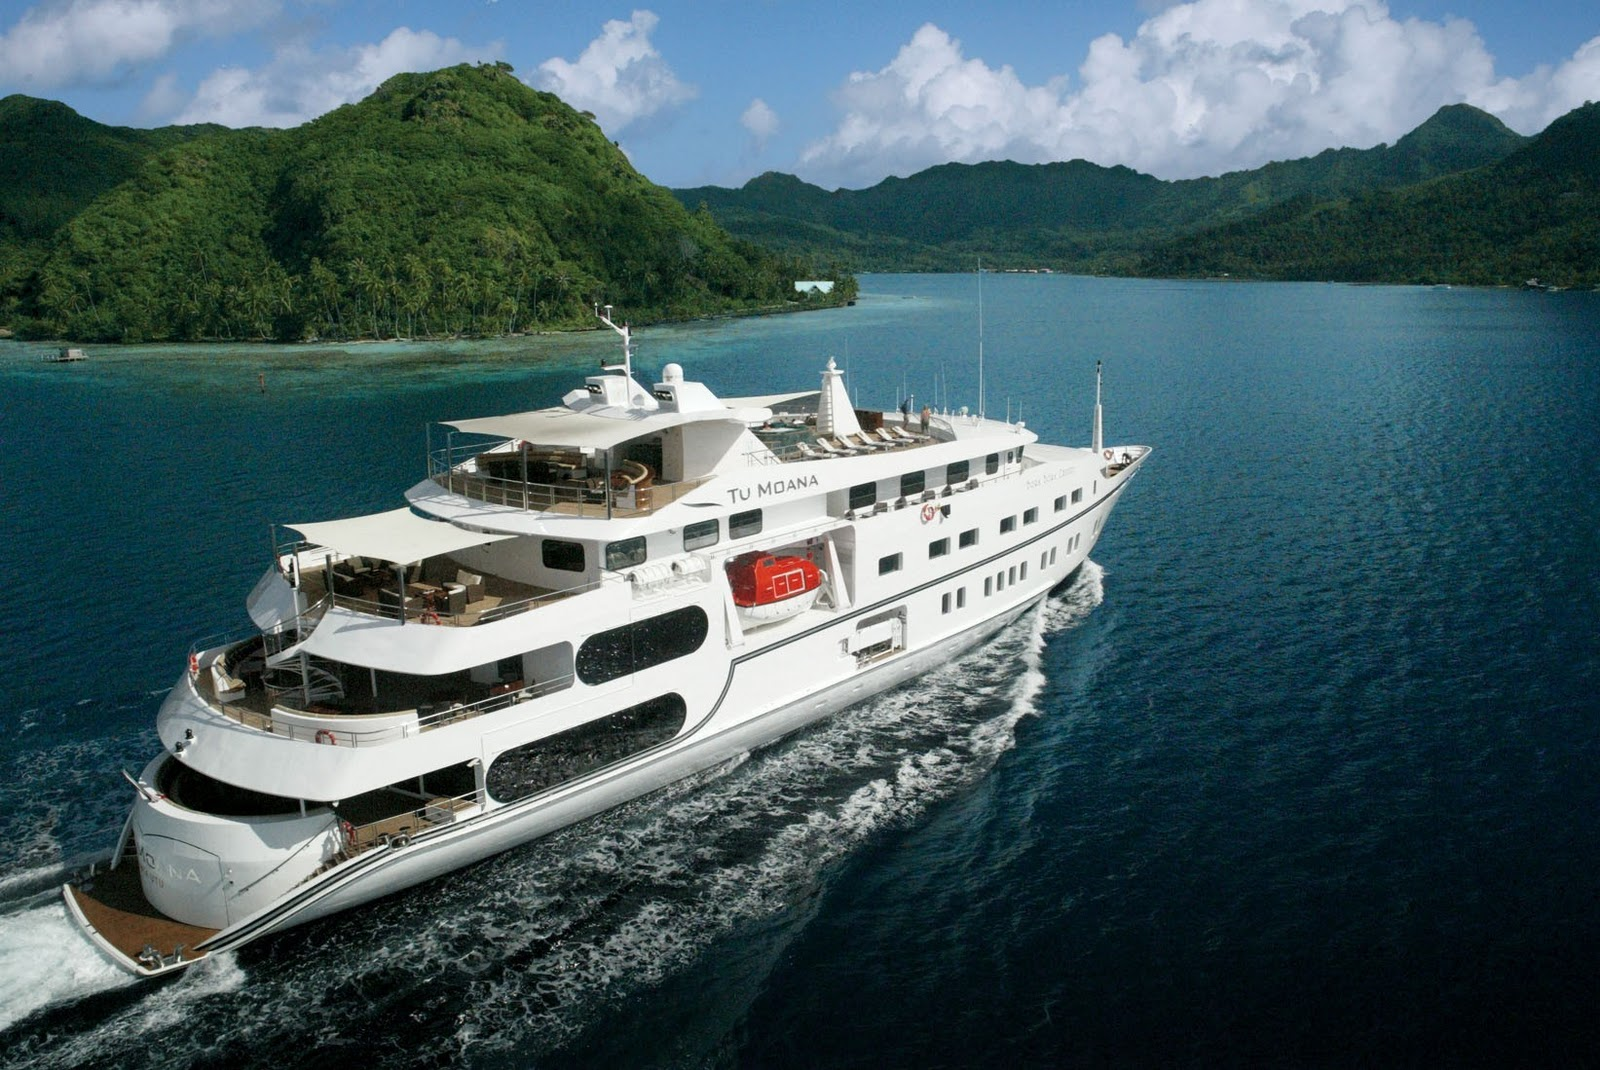 Expedition Ships for Sale http://www.expeditioncruising.com/2012/10/for-sale-tu-moana.html